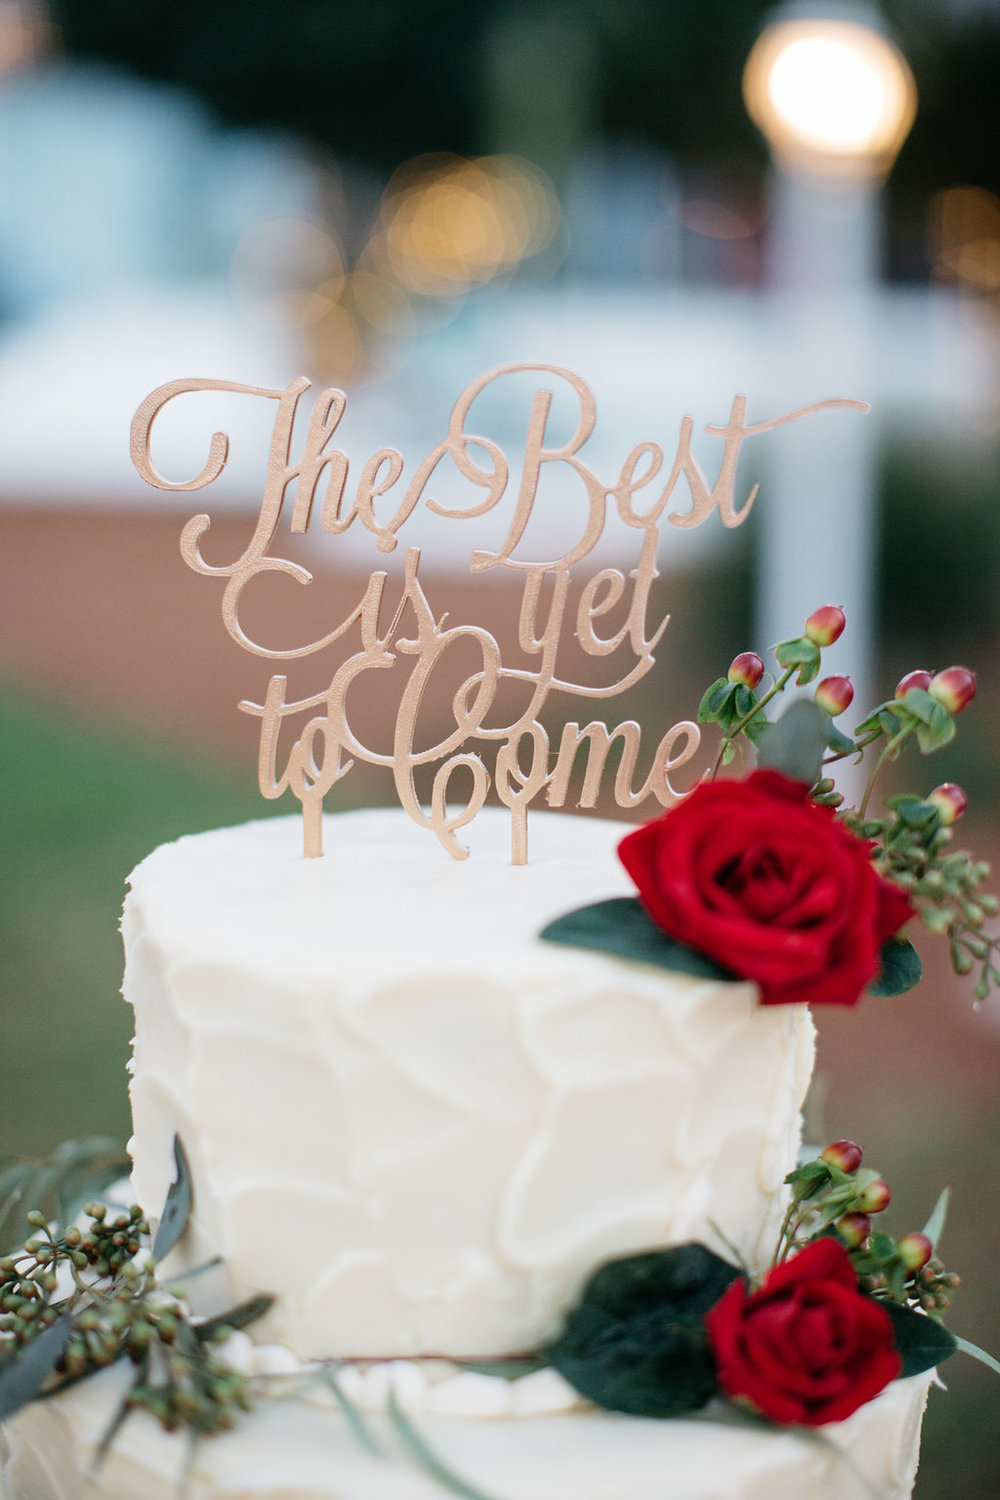 The Best is yet to Come wedding cake topper